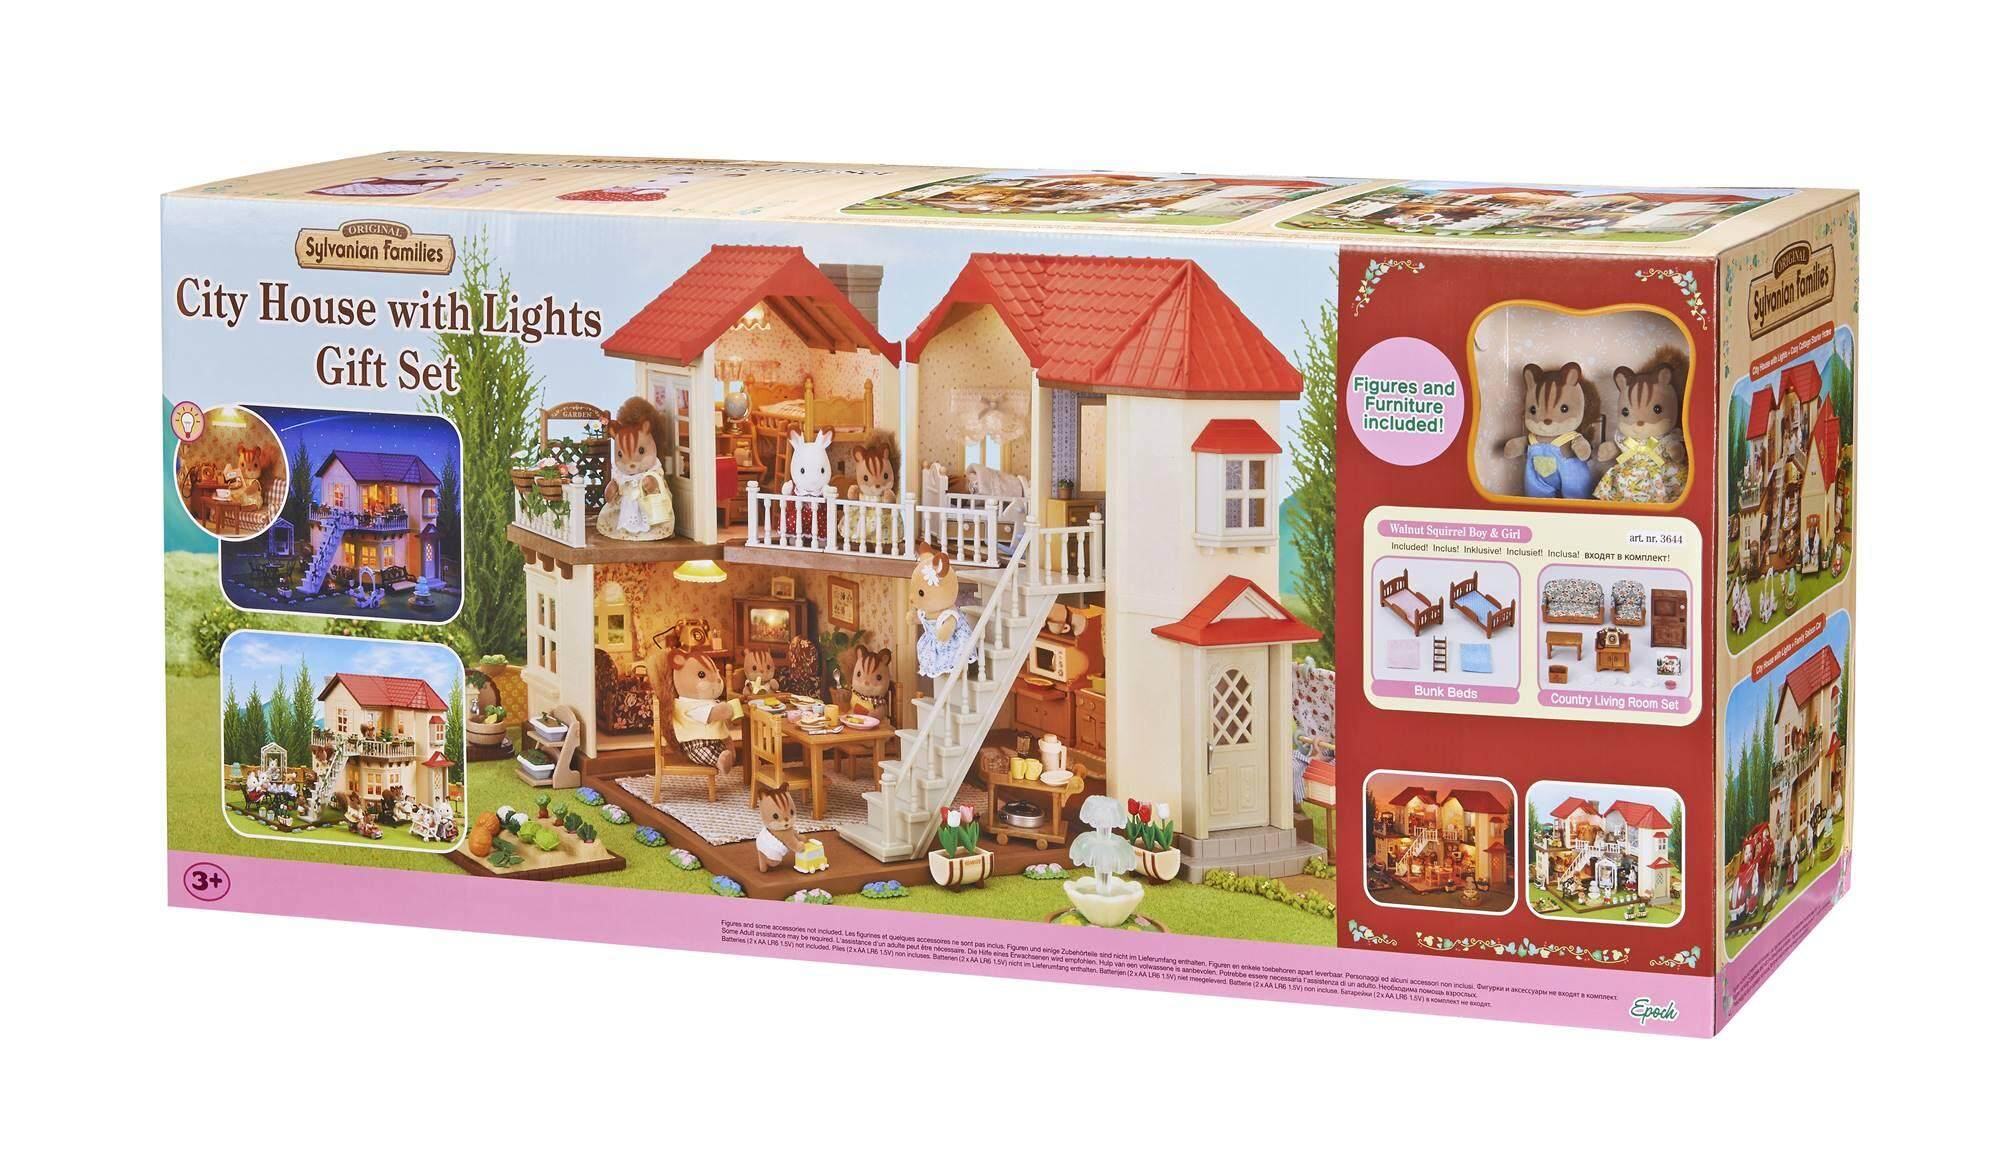 Sylvanian families city house with lights gift set g3644